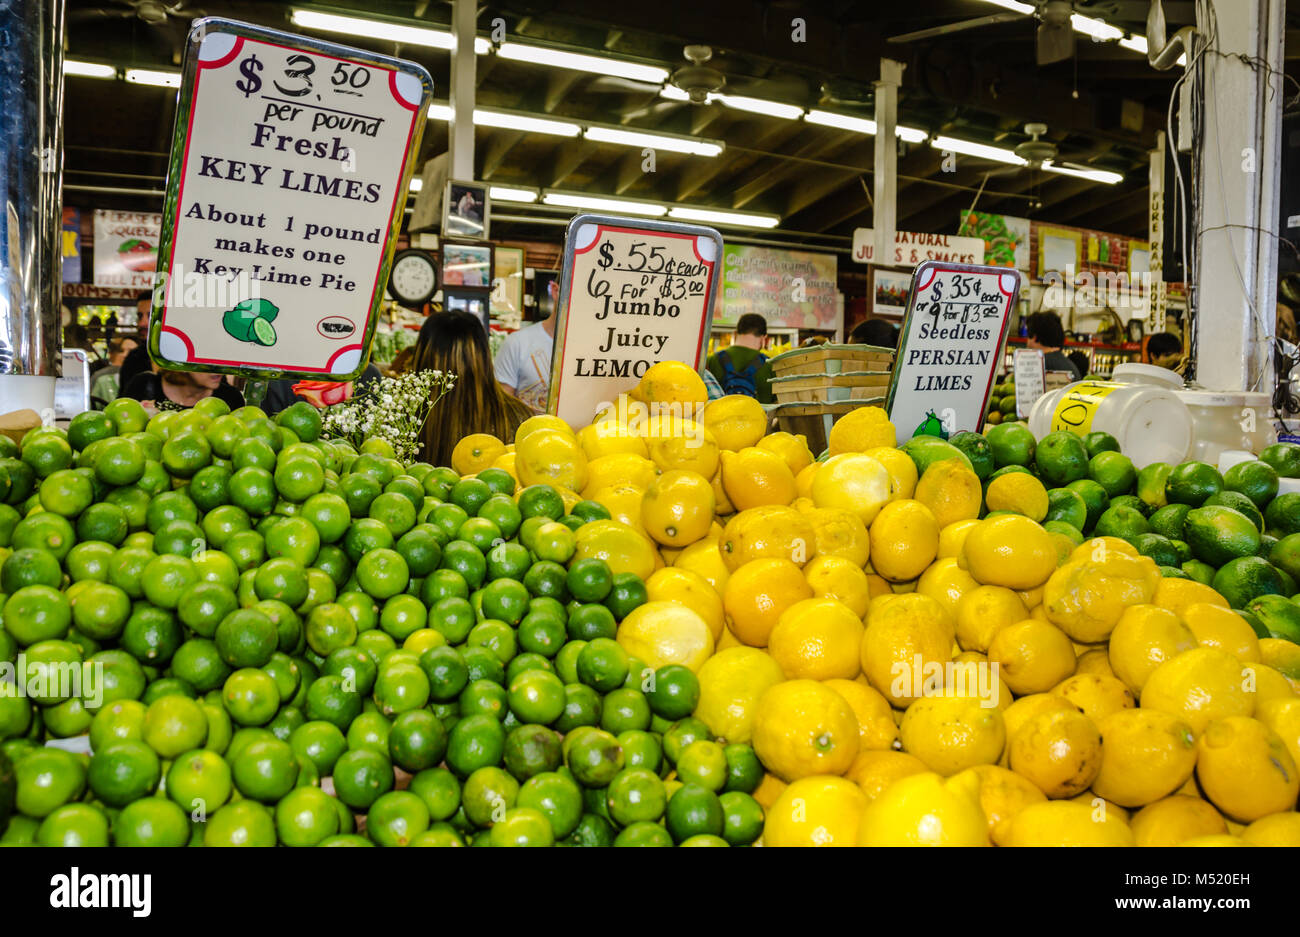 Key Lime display at Robert Is Here, popular South Dade farm stand that's equal parts tourist attraction and the Stock Photo